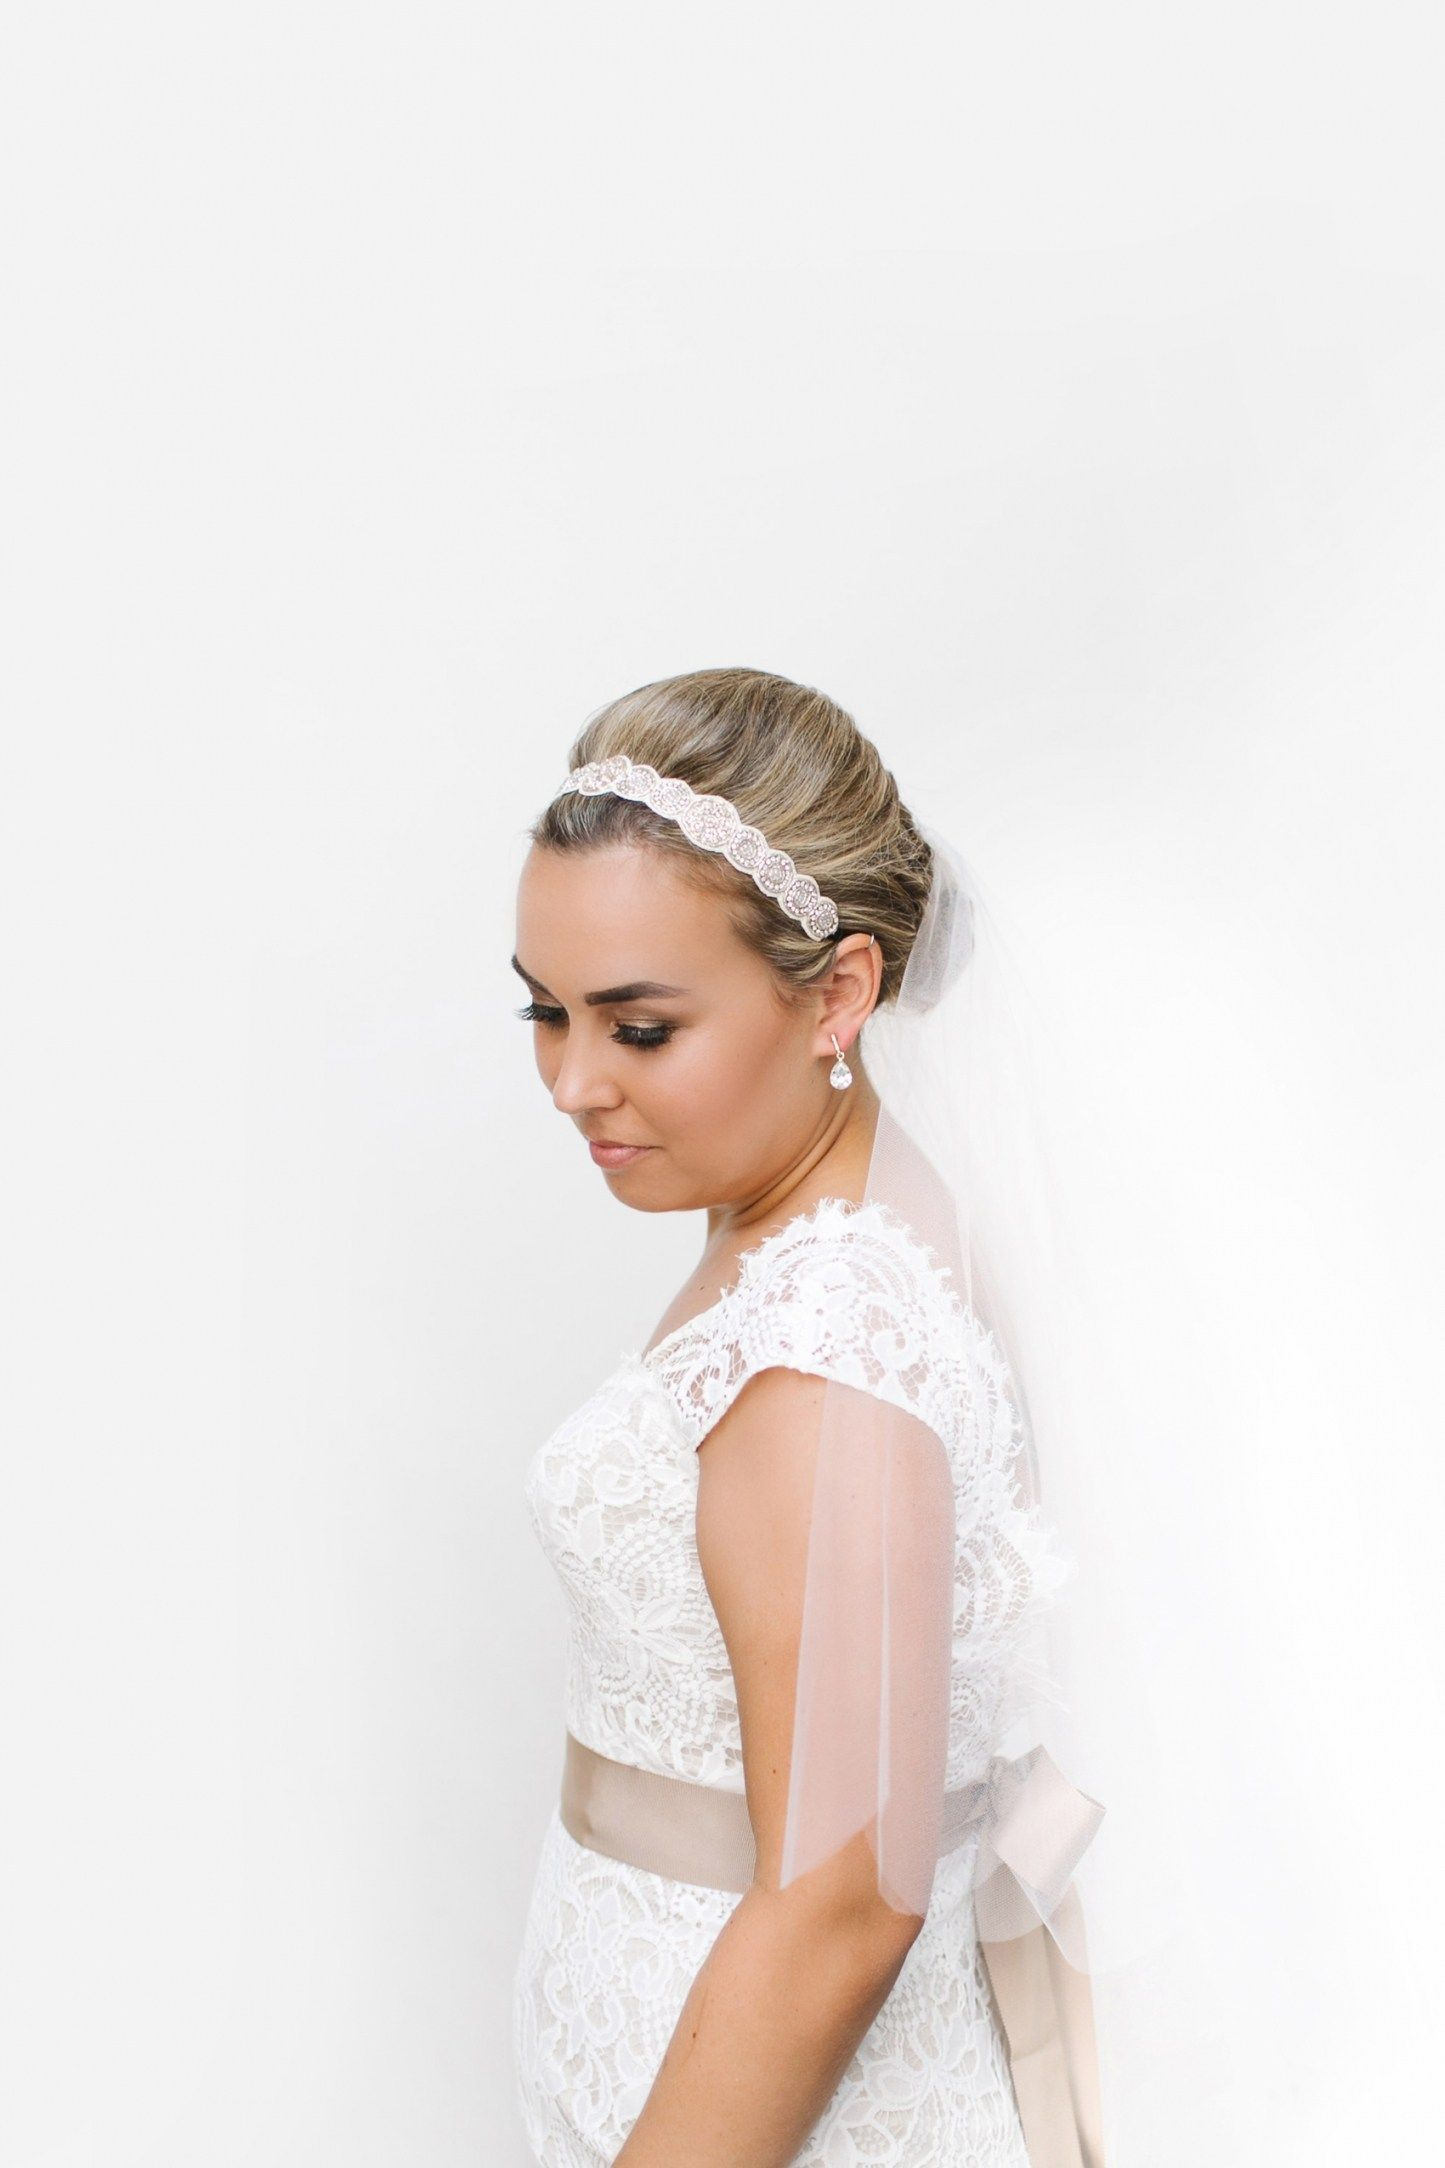 wedding hair and makeup lancaster pa | hairstyles ideas for me